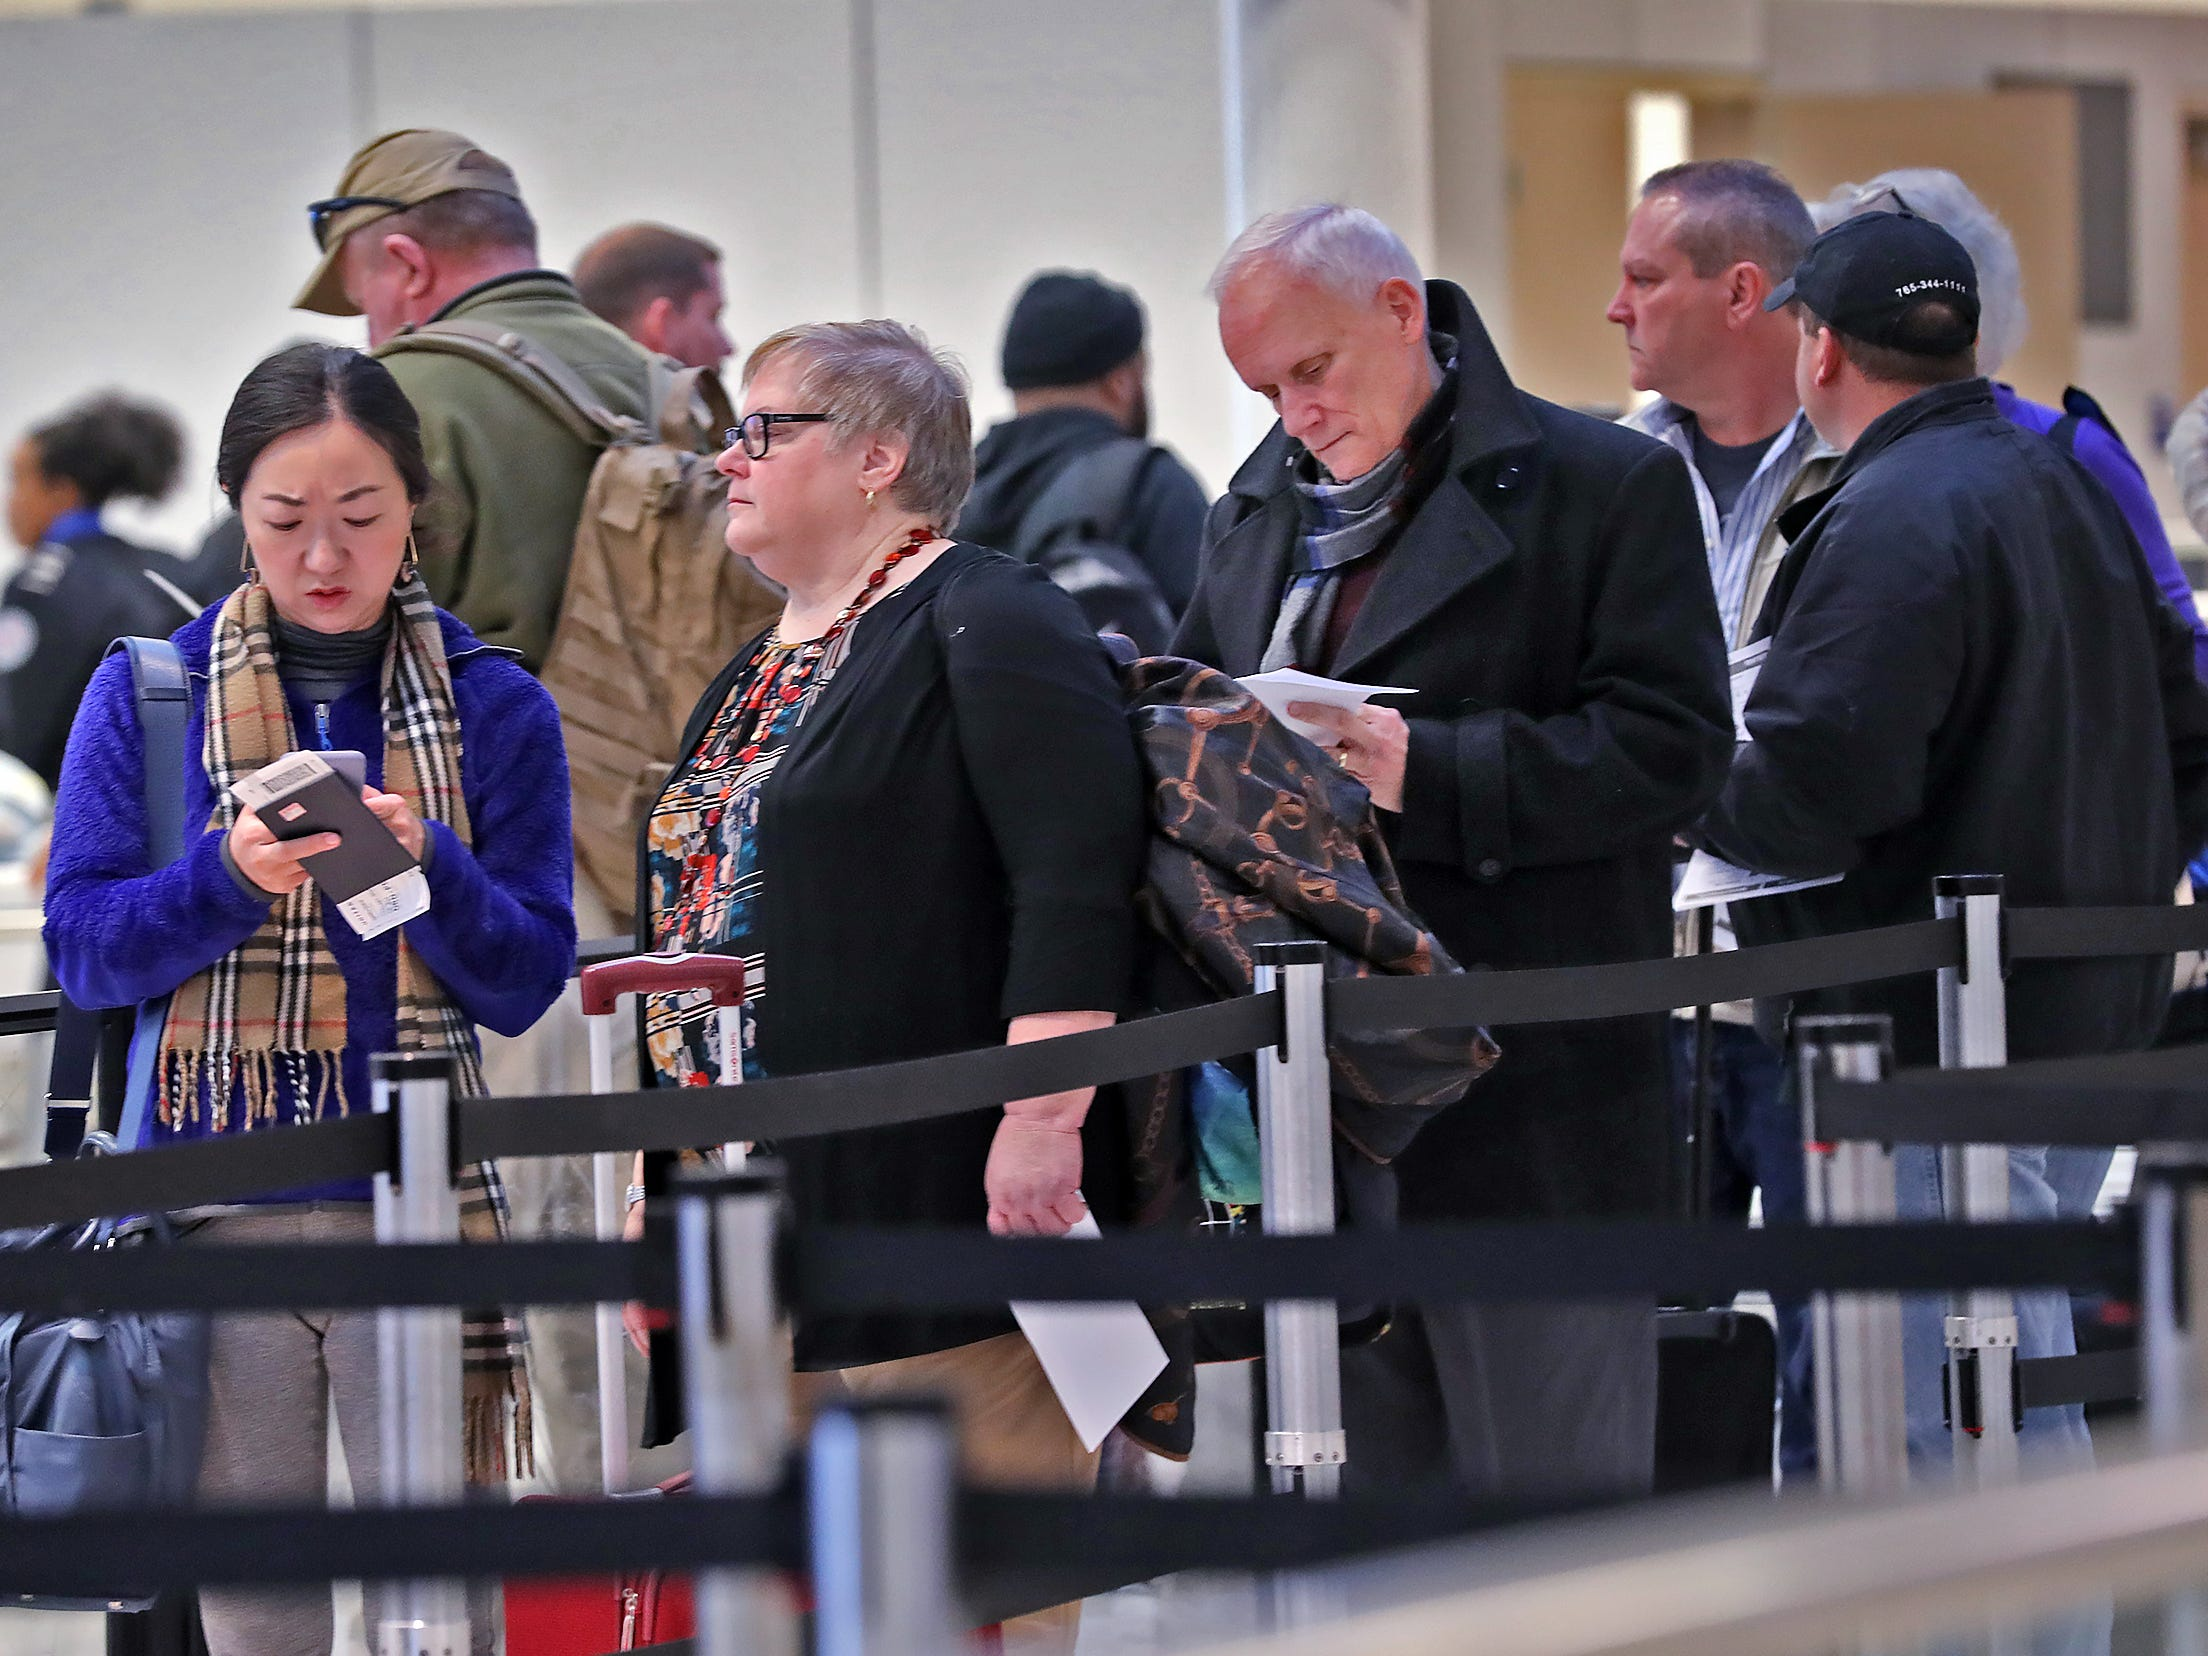 Travelers wait to go through security at the Indianapolis International Airport, Tuesday, Jan. 15, 2019.